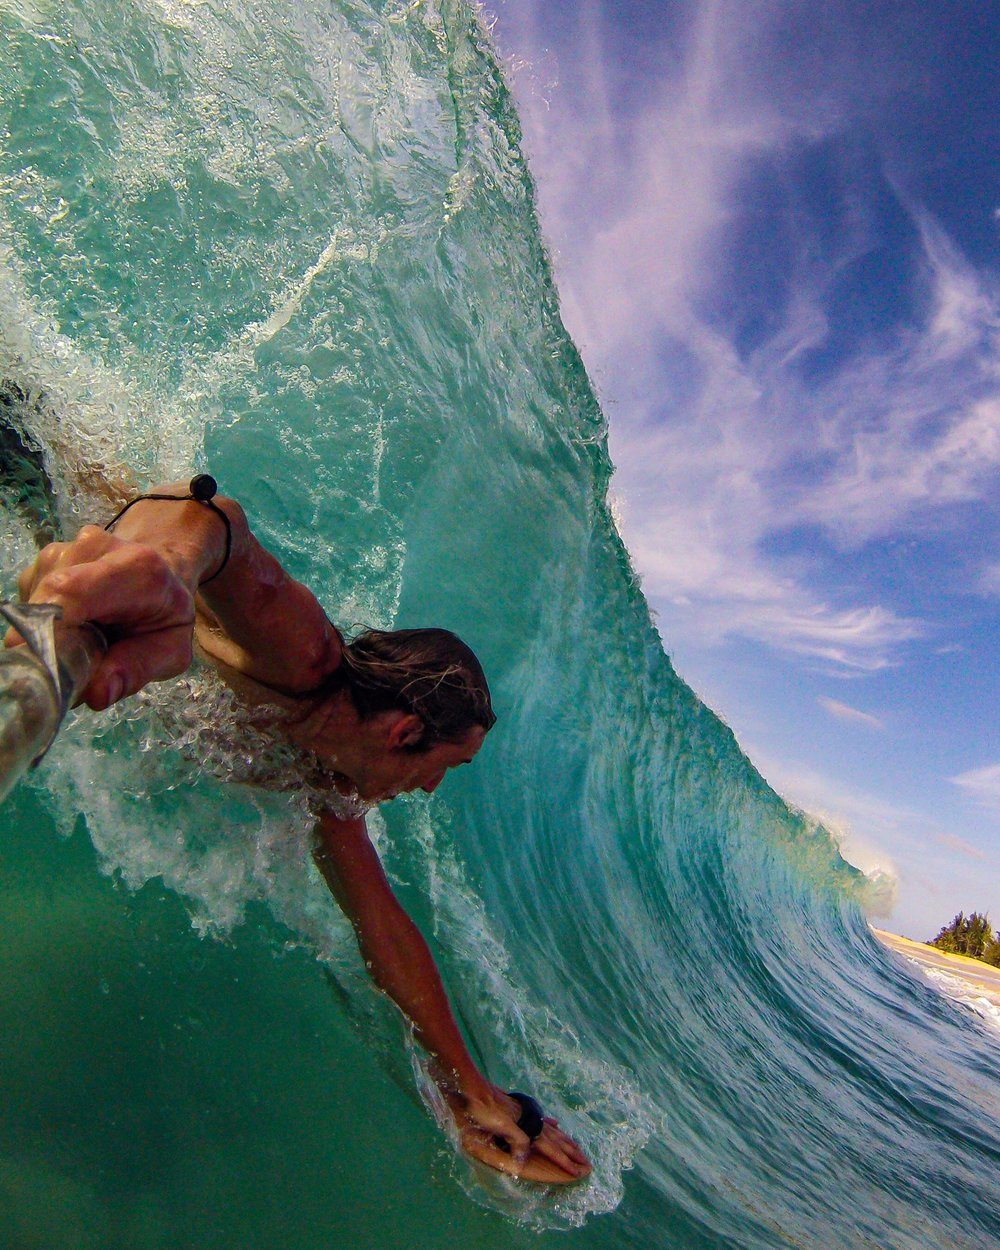 hand plane body surfing